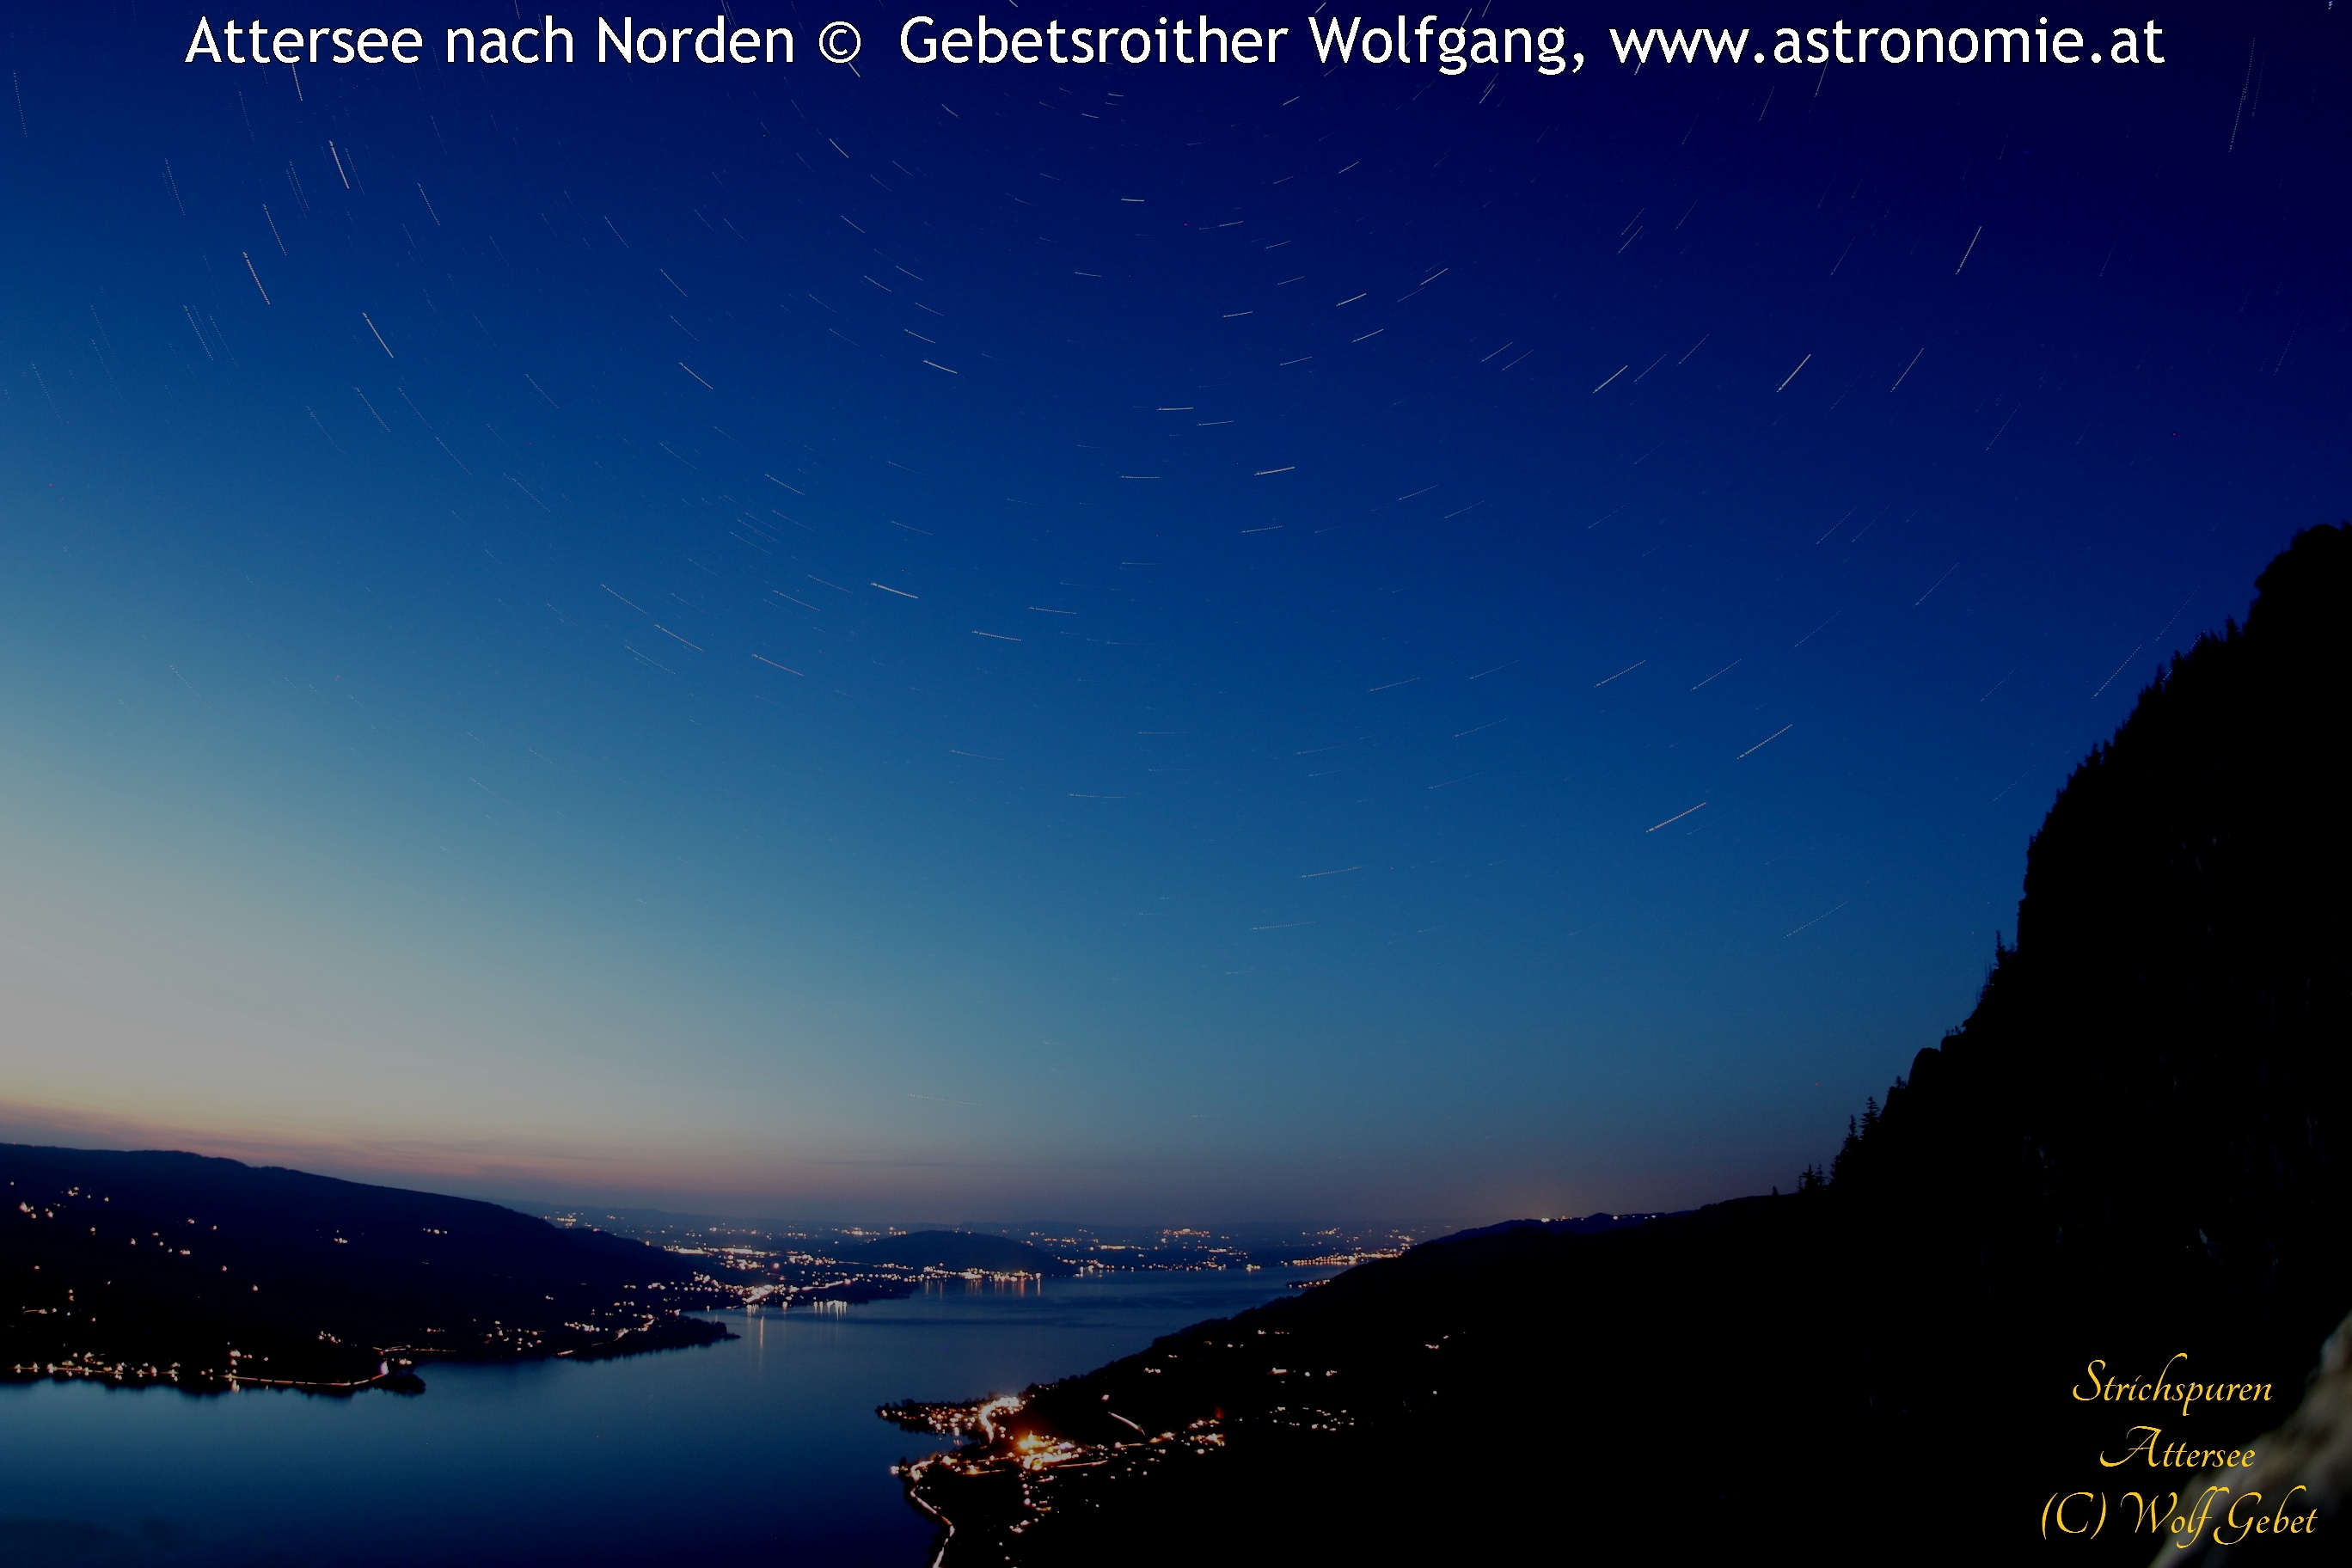 -Strichspur Attersee © image-owner(s)